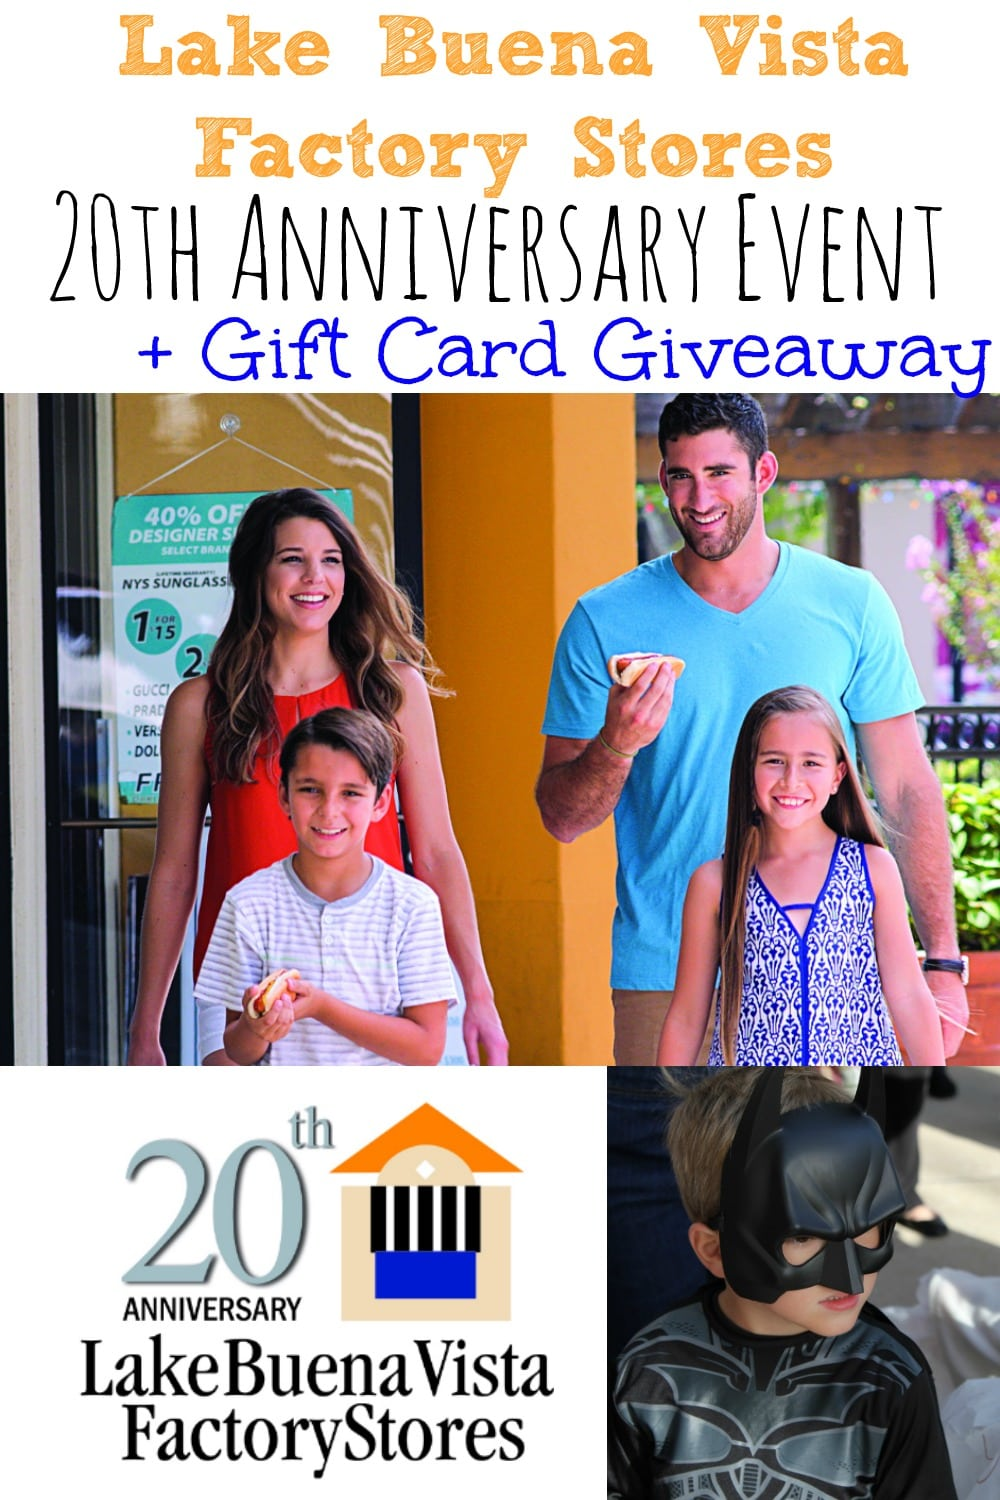 lake-buena-vista-factory-stores-20th-year-anniversary-event-gift-card-giveaway